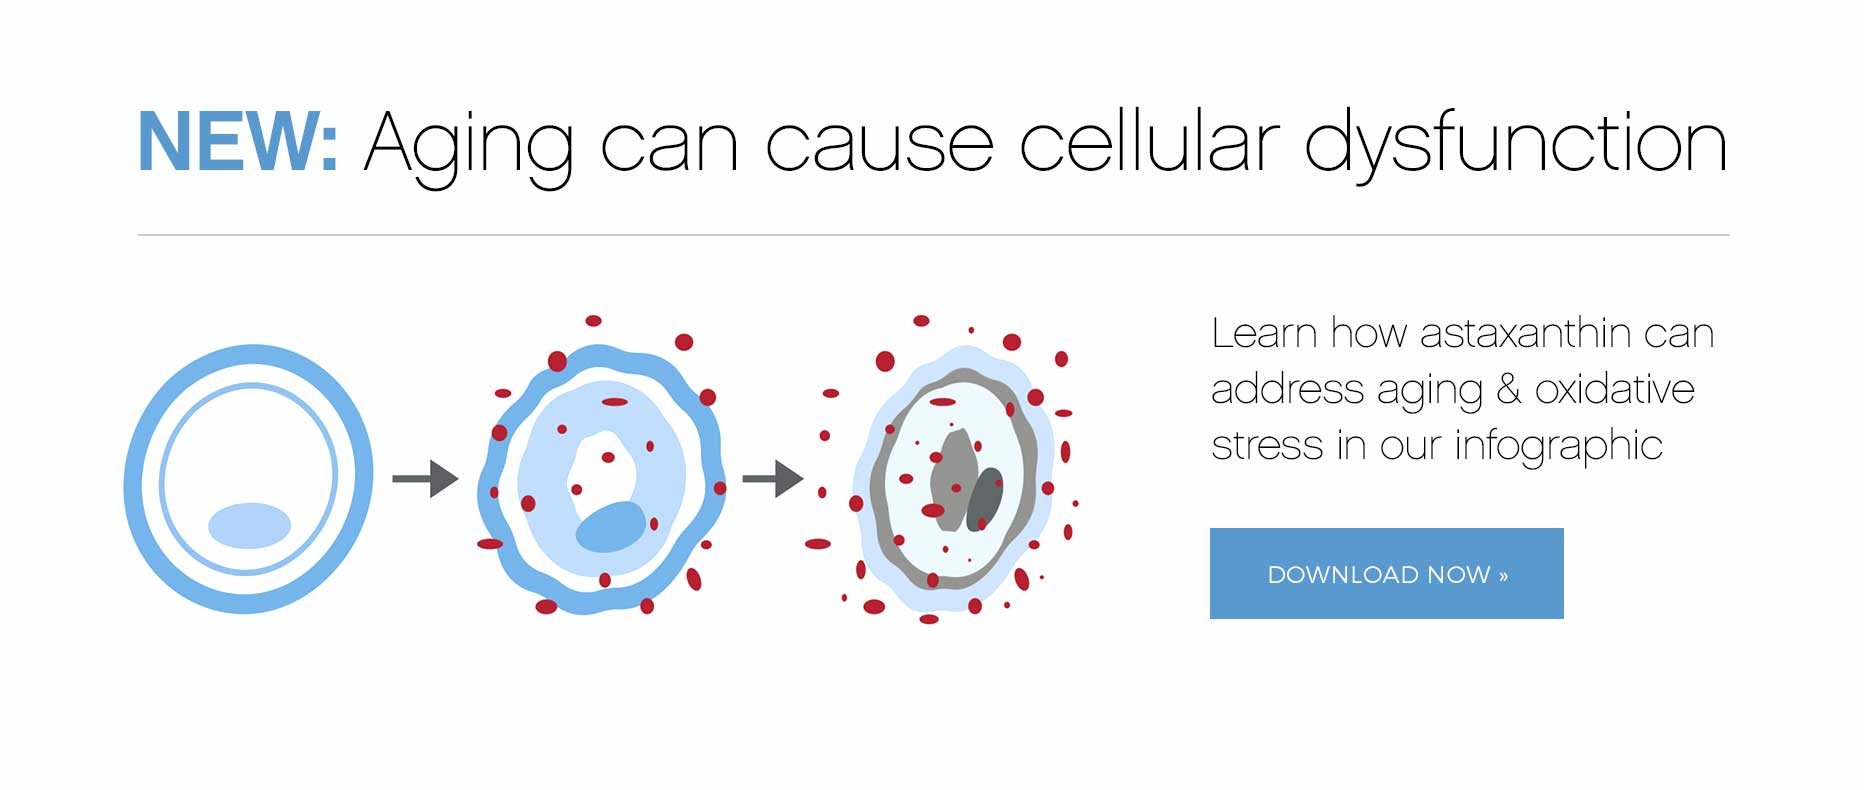 View our Aging can cause cellular dysfunction infographic